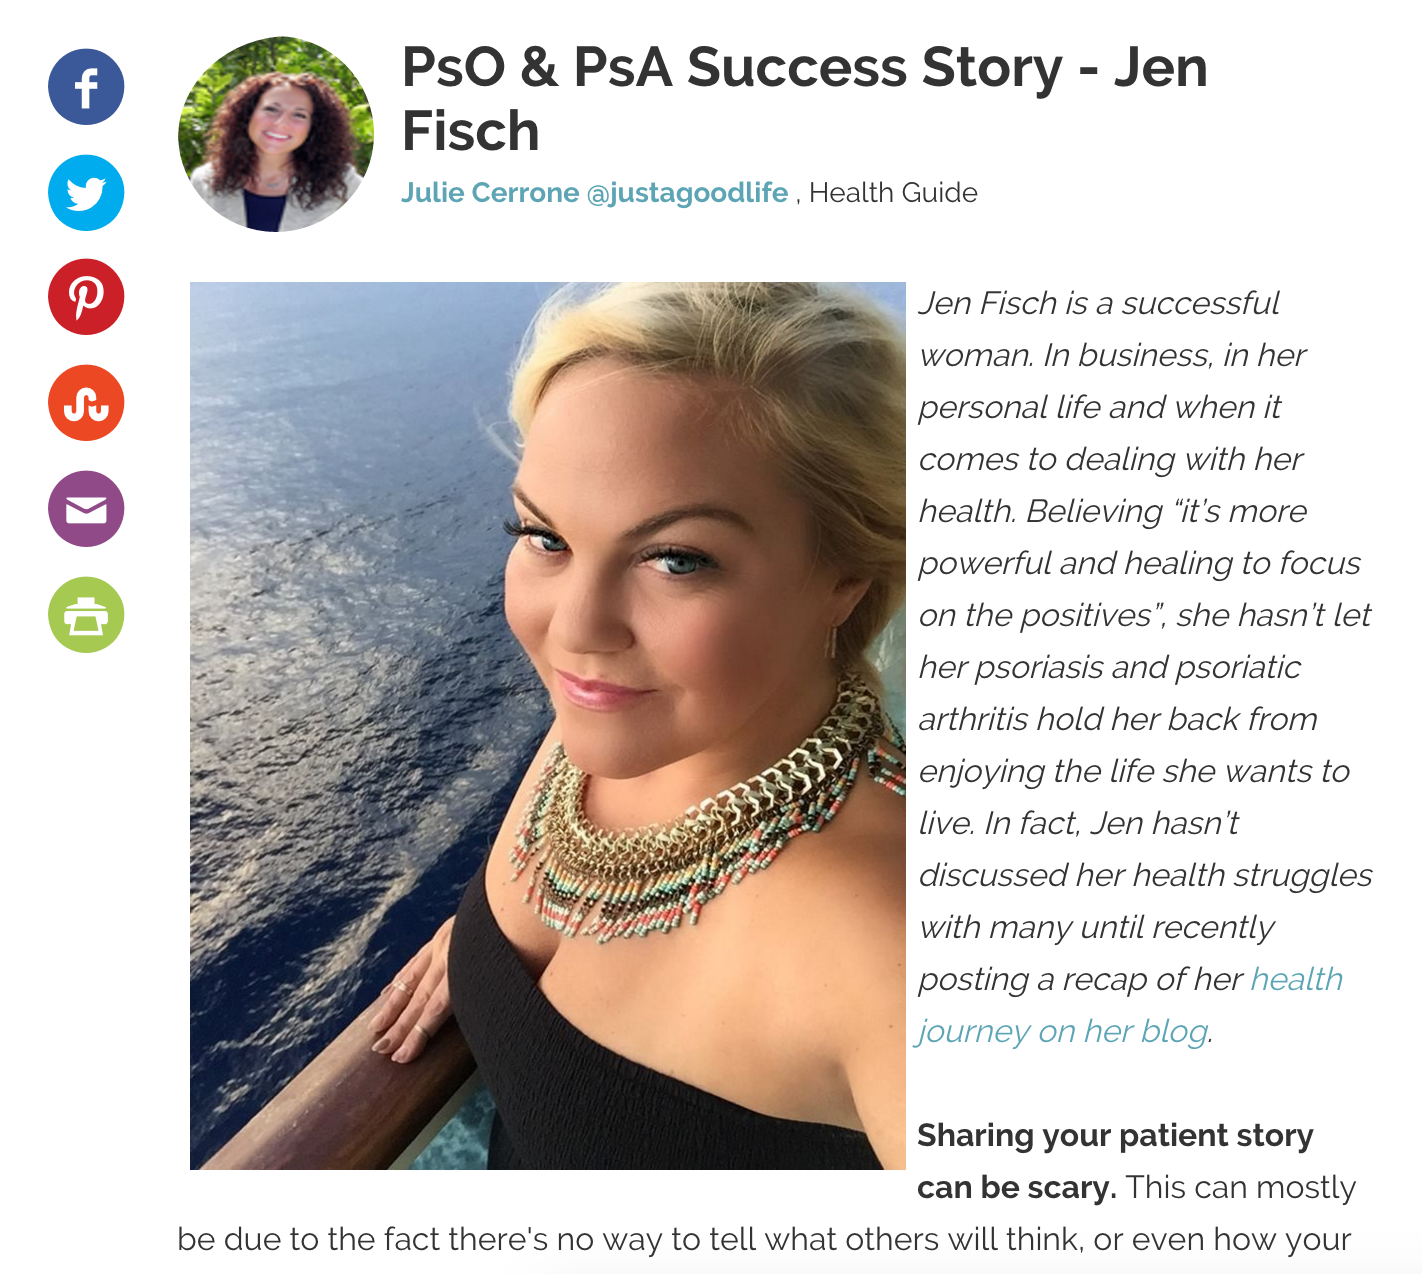 HEALTH CENTRAL INTERVIEW PSORIASIS AND PSORIATIC ARTHRITIS SUCCESS STORY BY JULIE CERRONE